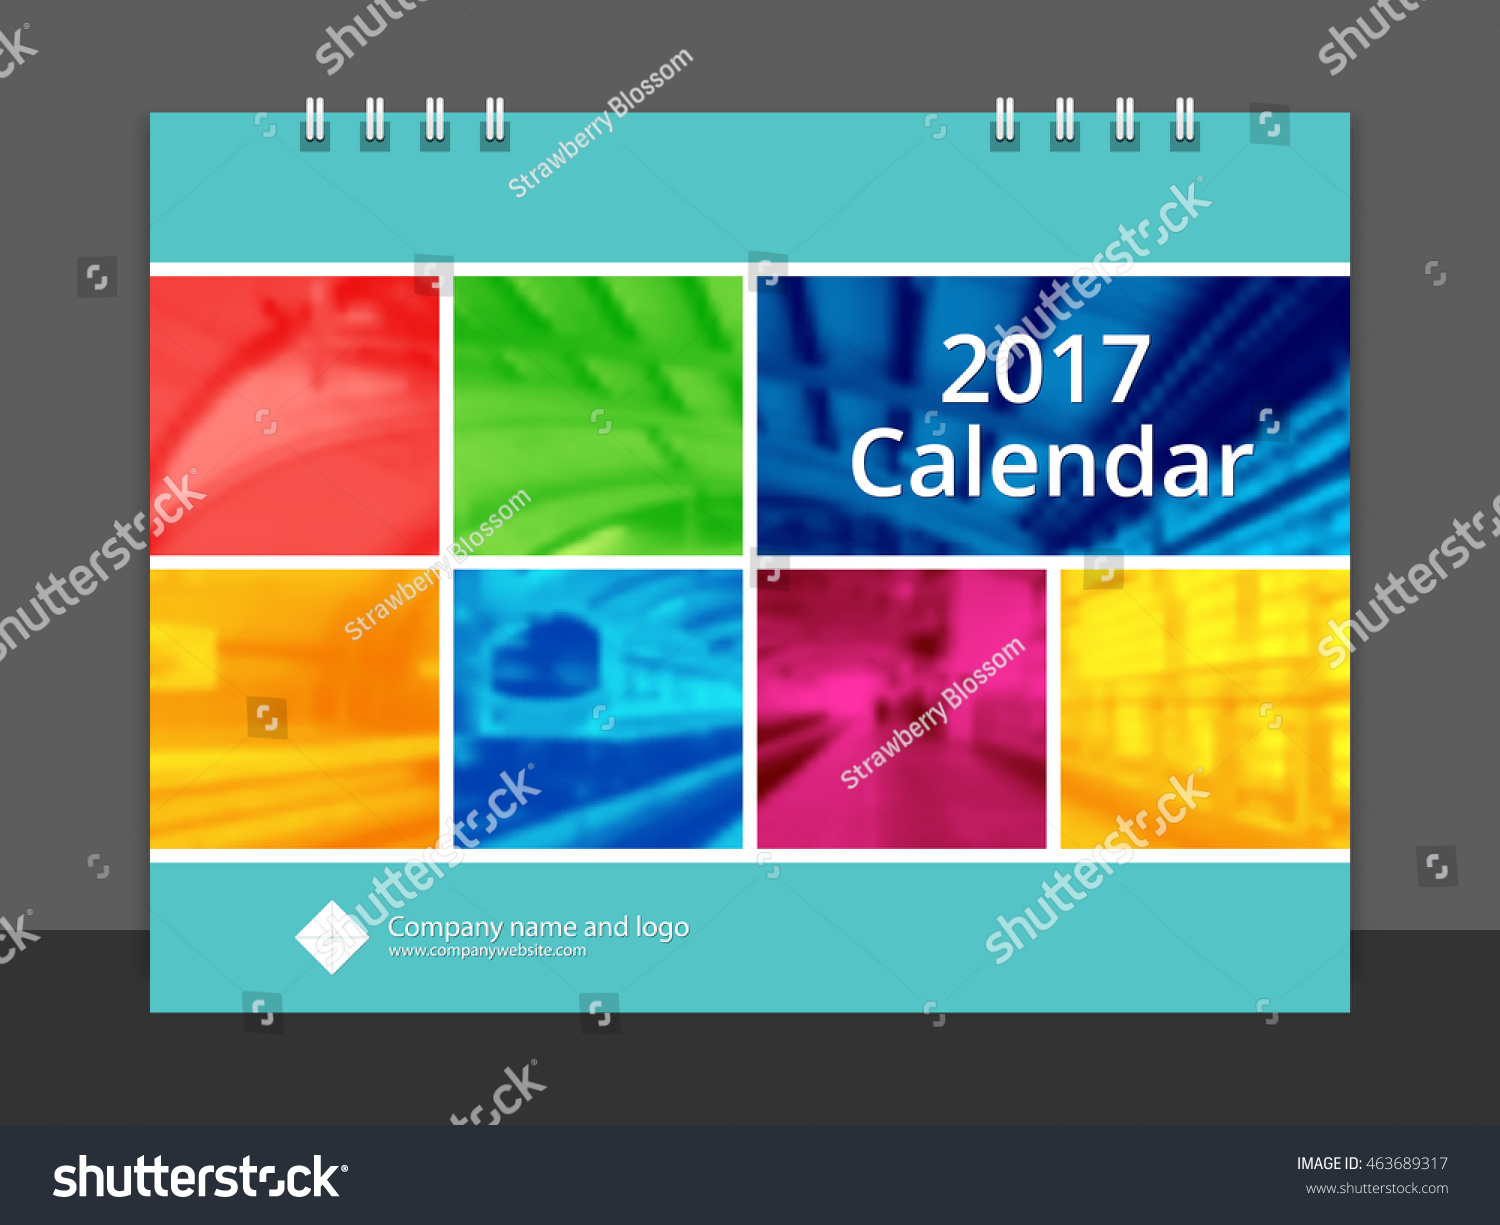 Cover Calendar Design Vector : Desk calendar font cover design stock vector